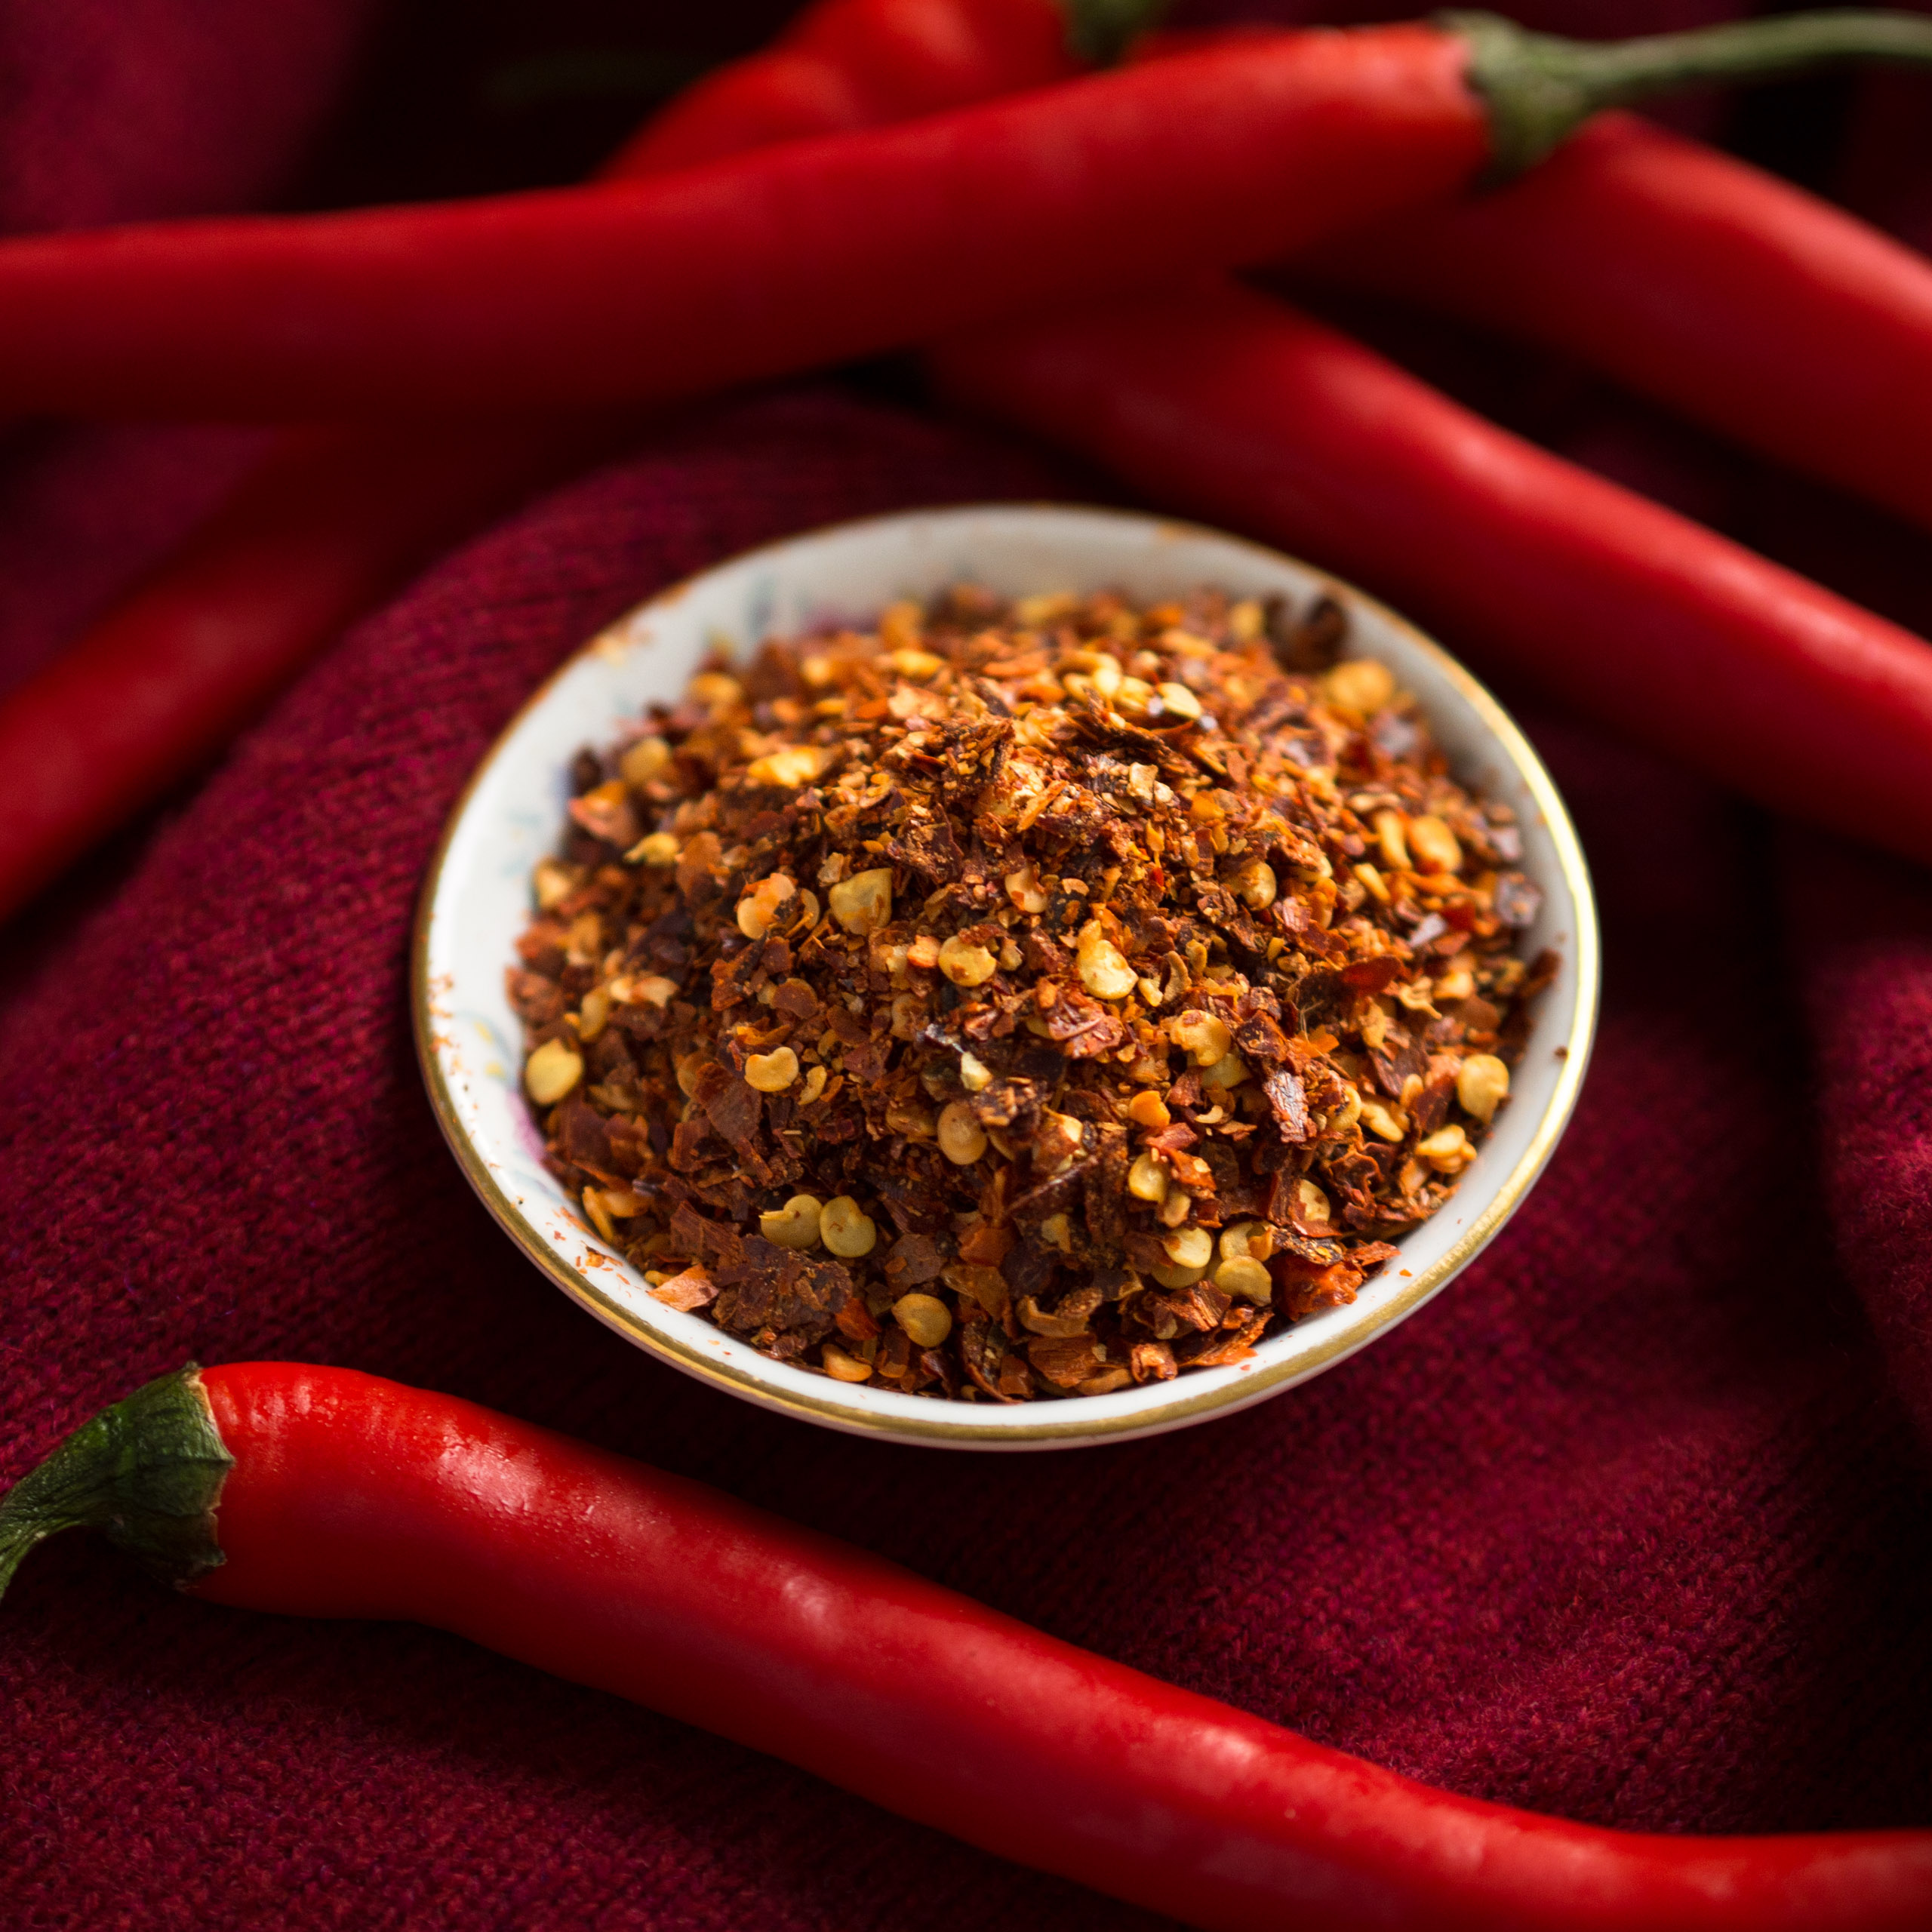 Substitute for Red Pepper Flakes